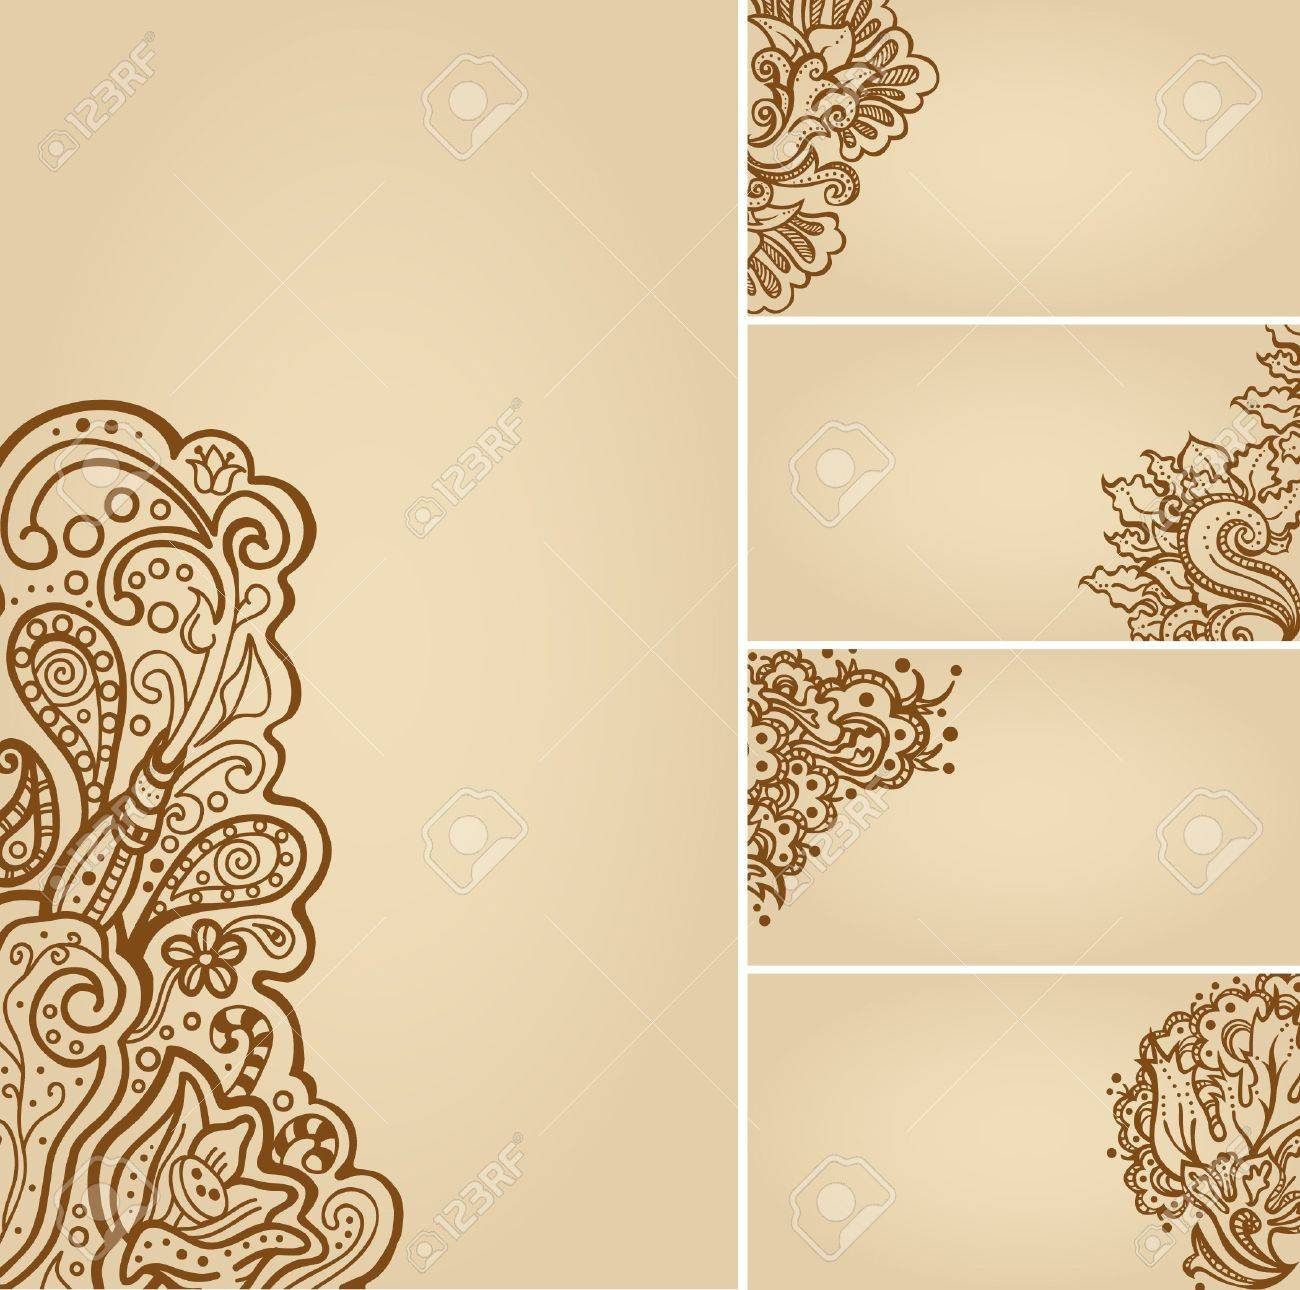 Set of henna tattoo floral banners and business card templates set of henna tattoo floral banners and business card templates stock vector 19759160 flashek Images